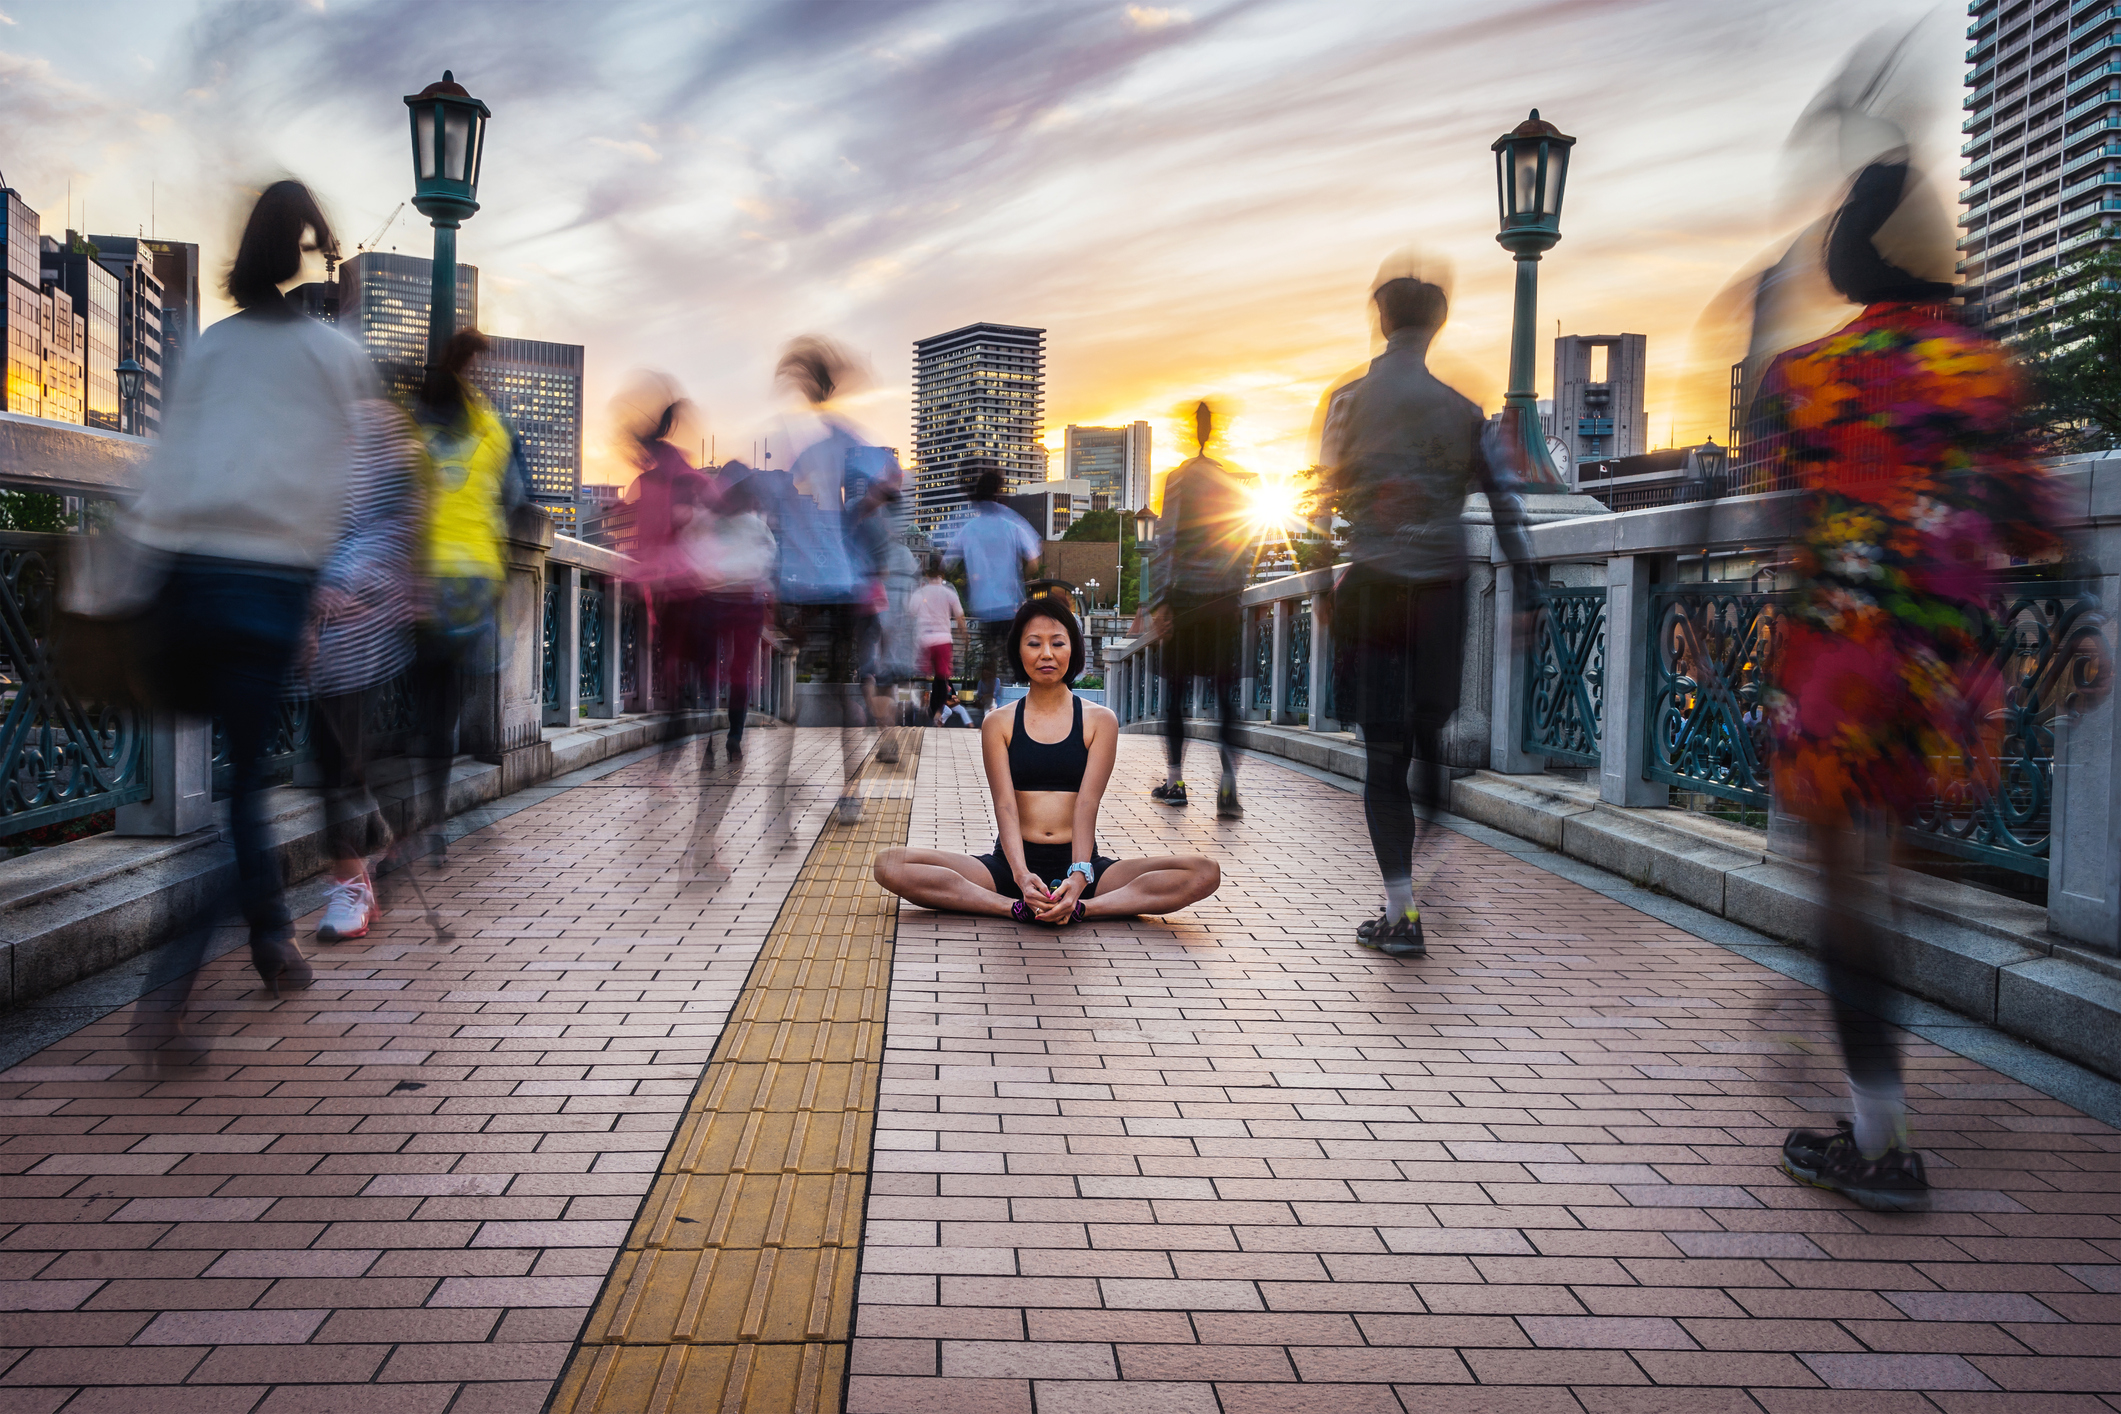 Woman Meditating Into The Crowd At Sunset